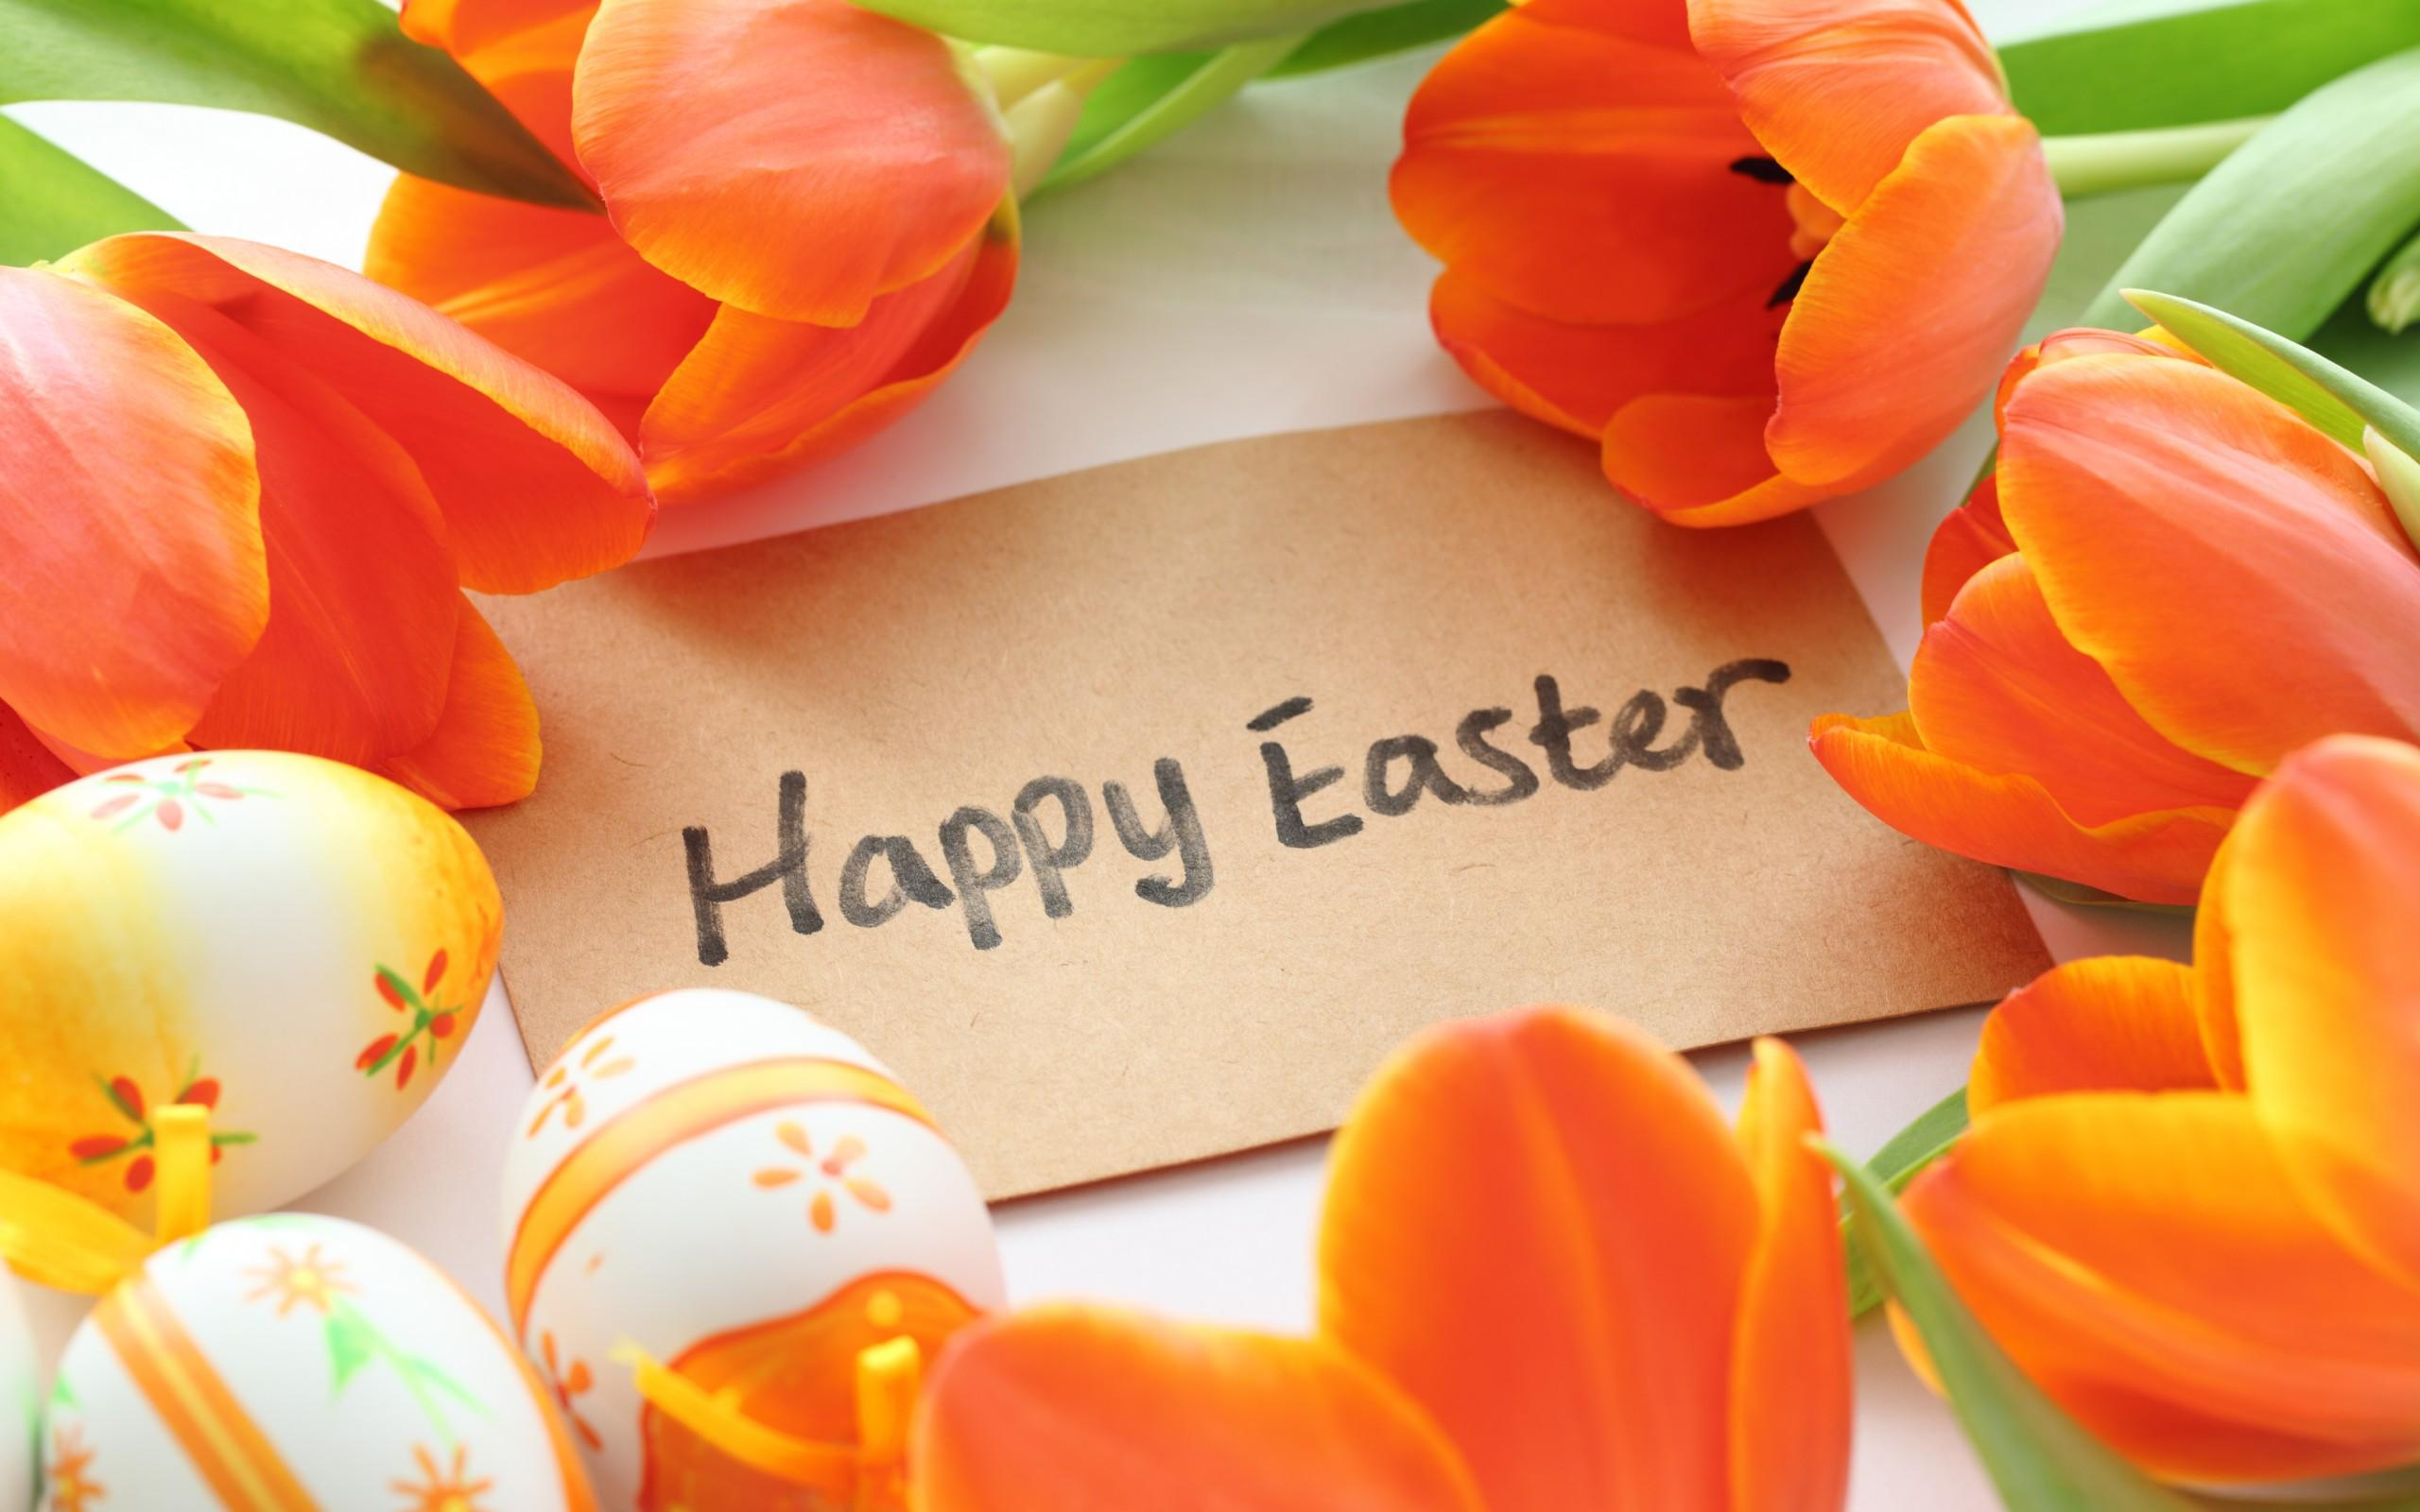 Easter letter tybe images